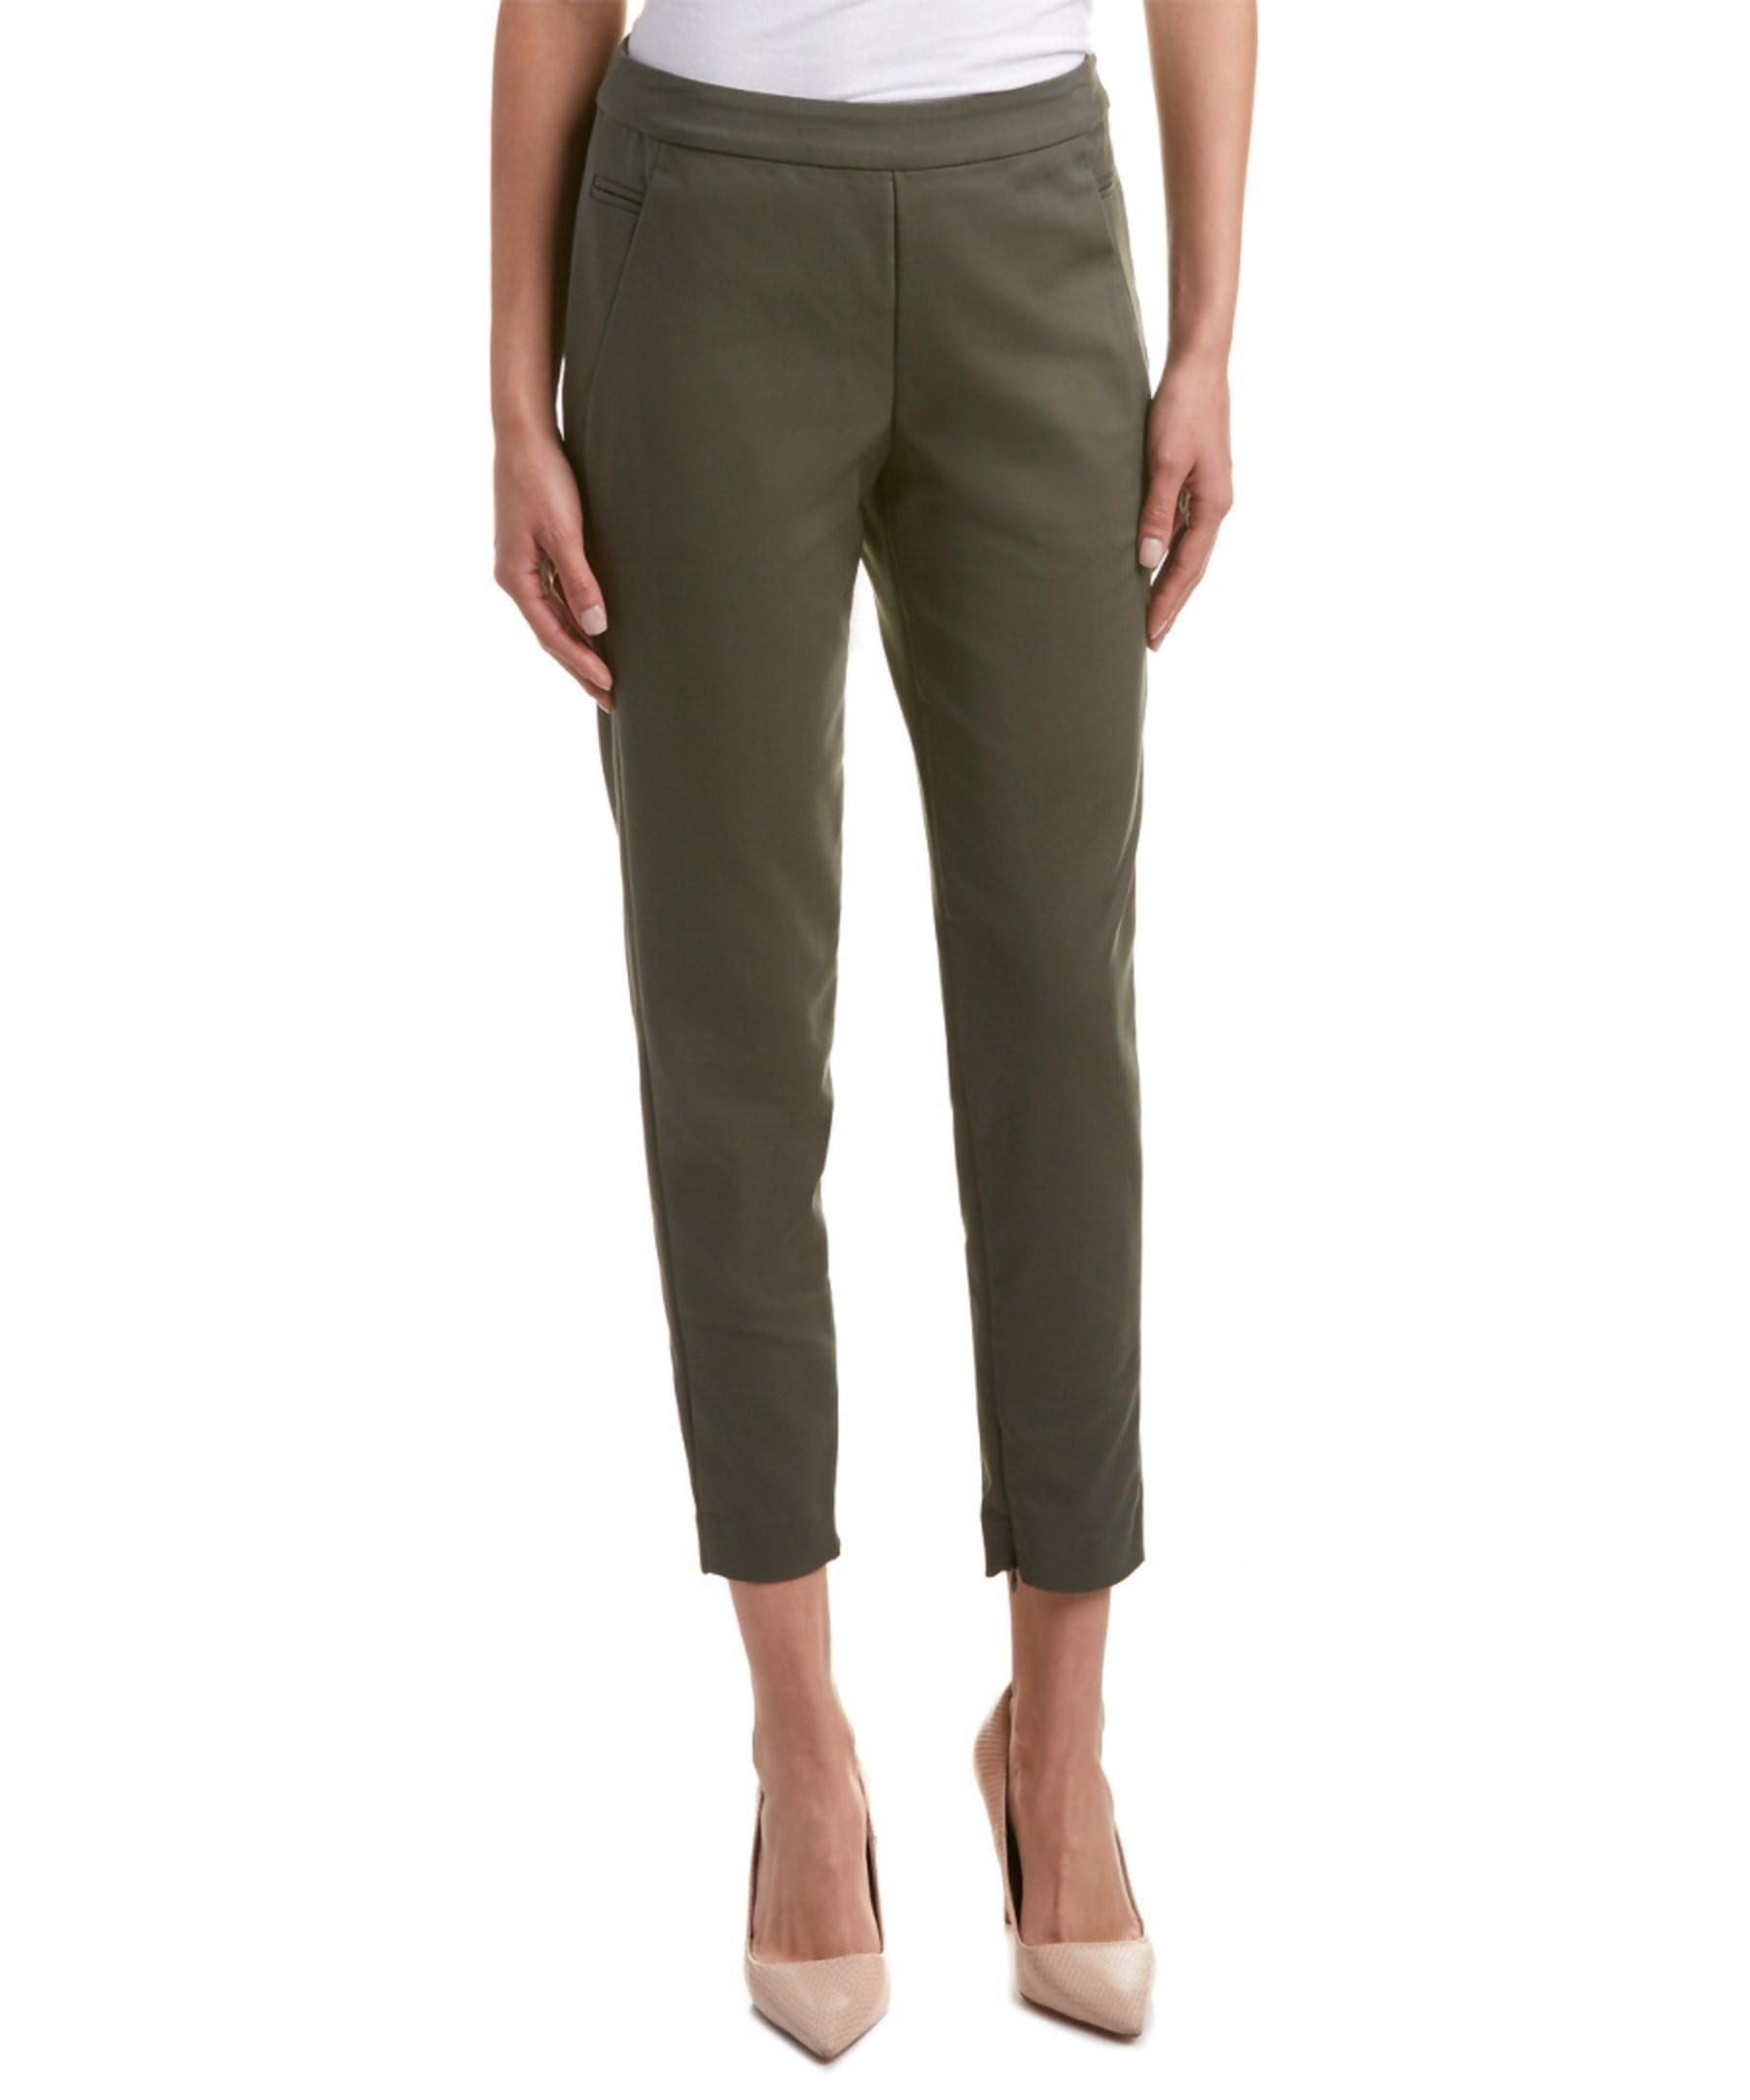 Talbots stretch ankle pants in malachite (green) Hottest Women Yoga Pants Quick Dry Patchwork Stripe Green Elastic Sexy Stretch Skinny Trousers Workout Fitness Sports Leggings Women's Pants .